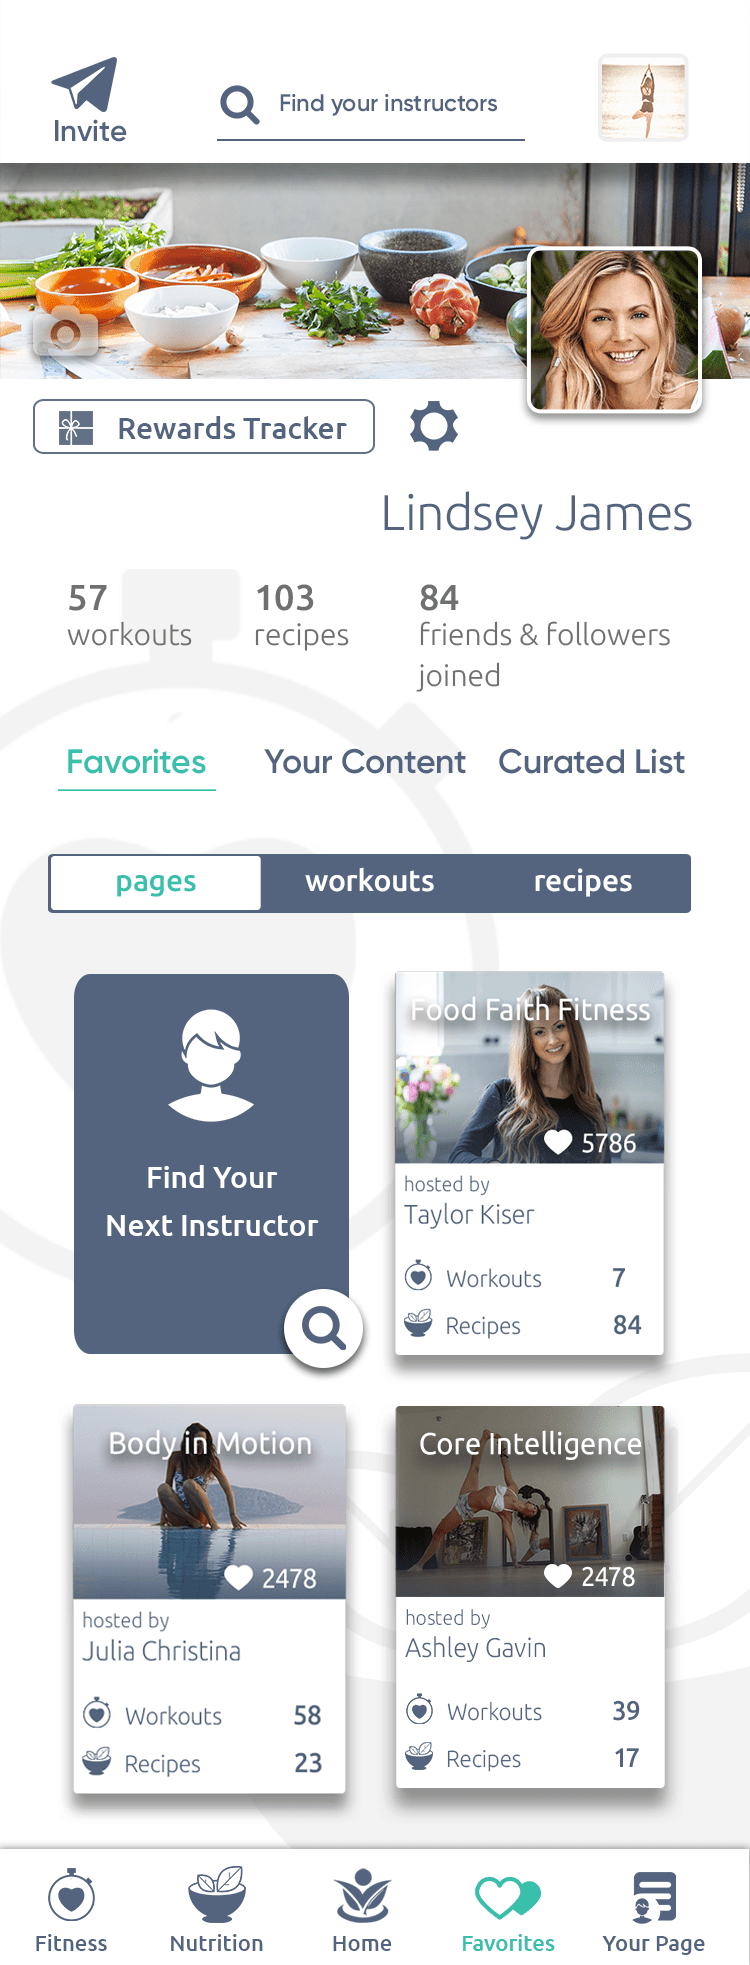 Make your healthy life easier with Thrvly - Come check out Thrvly! An awesome place to find all your health and fitness needs in one spot! | Foodfaithfitness.com | @FoodFaithFit